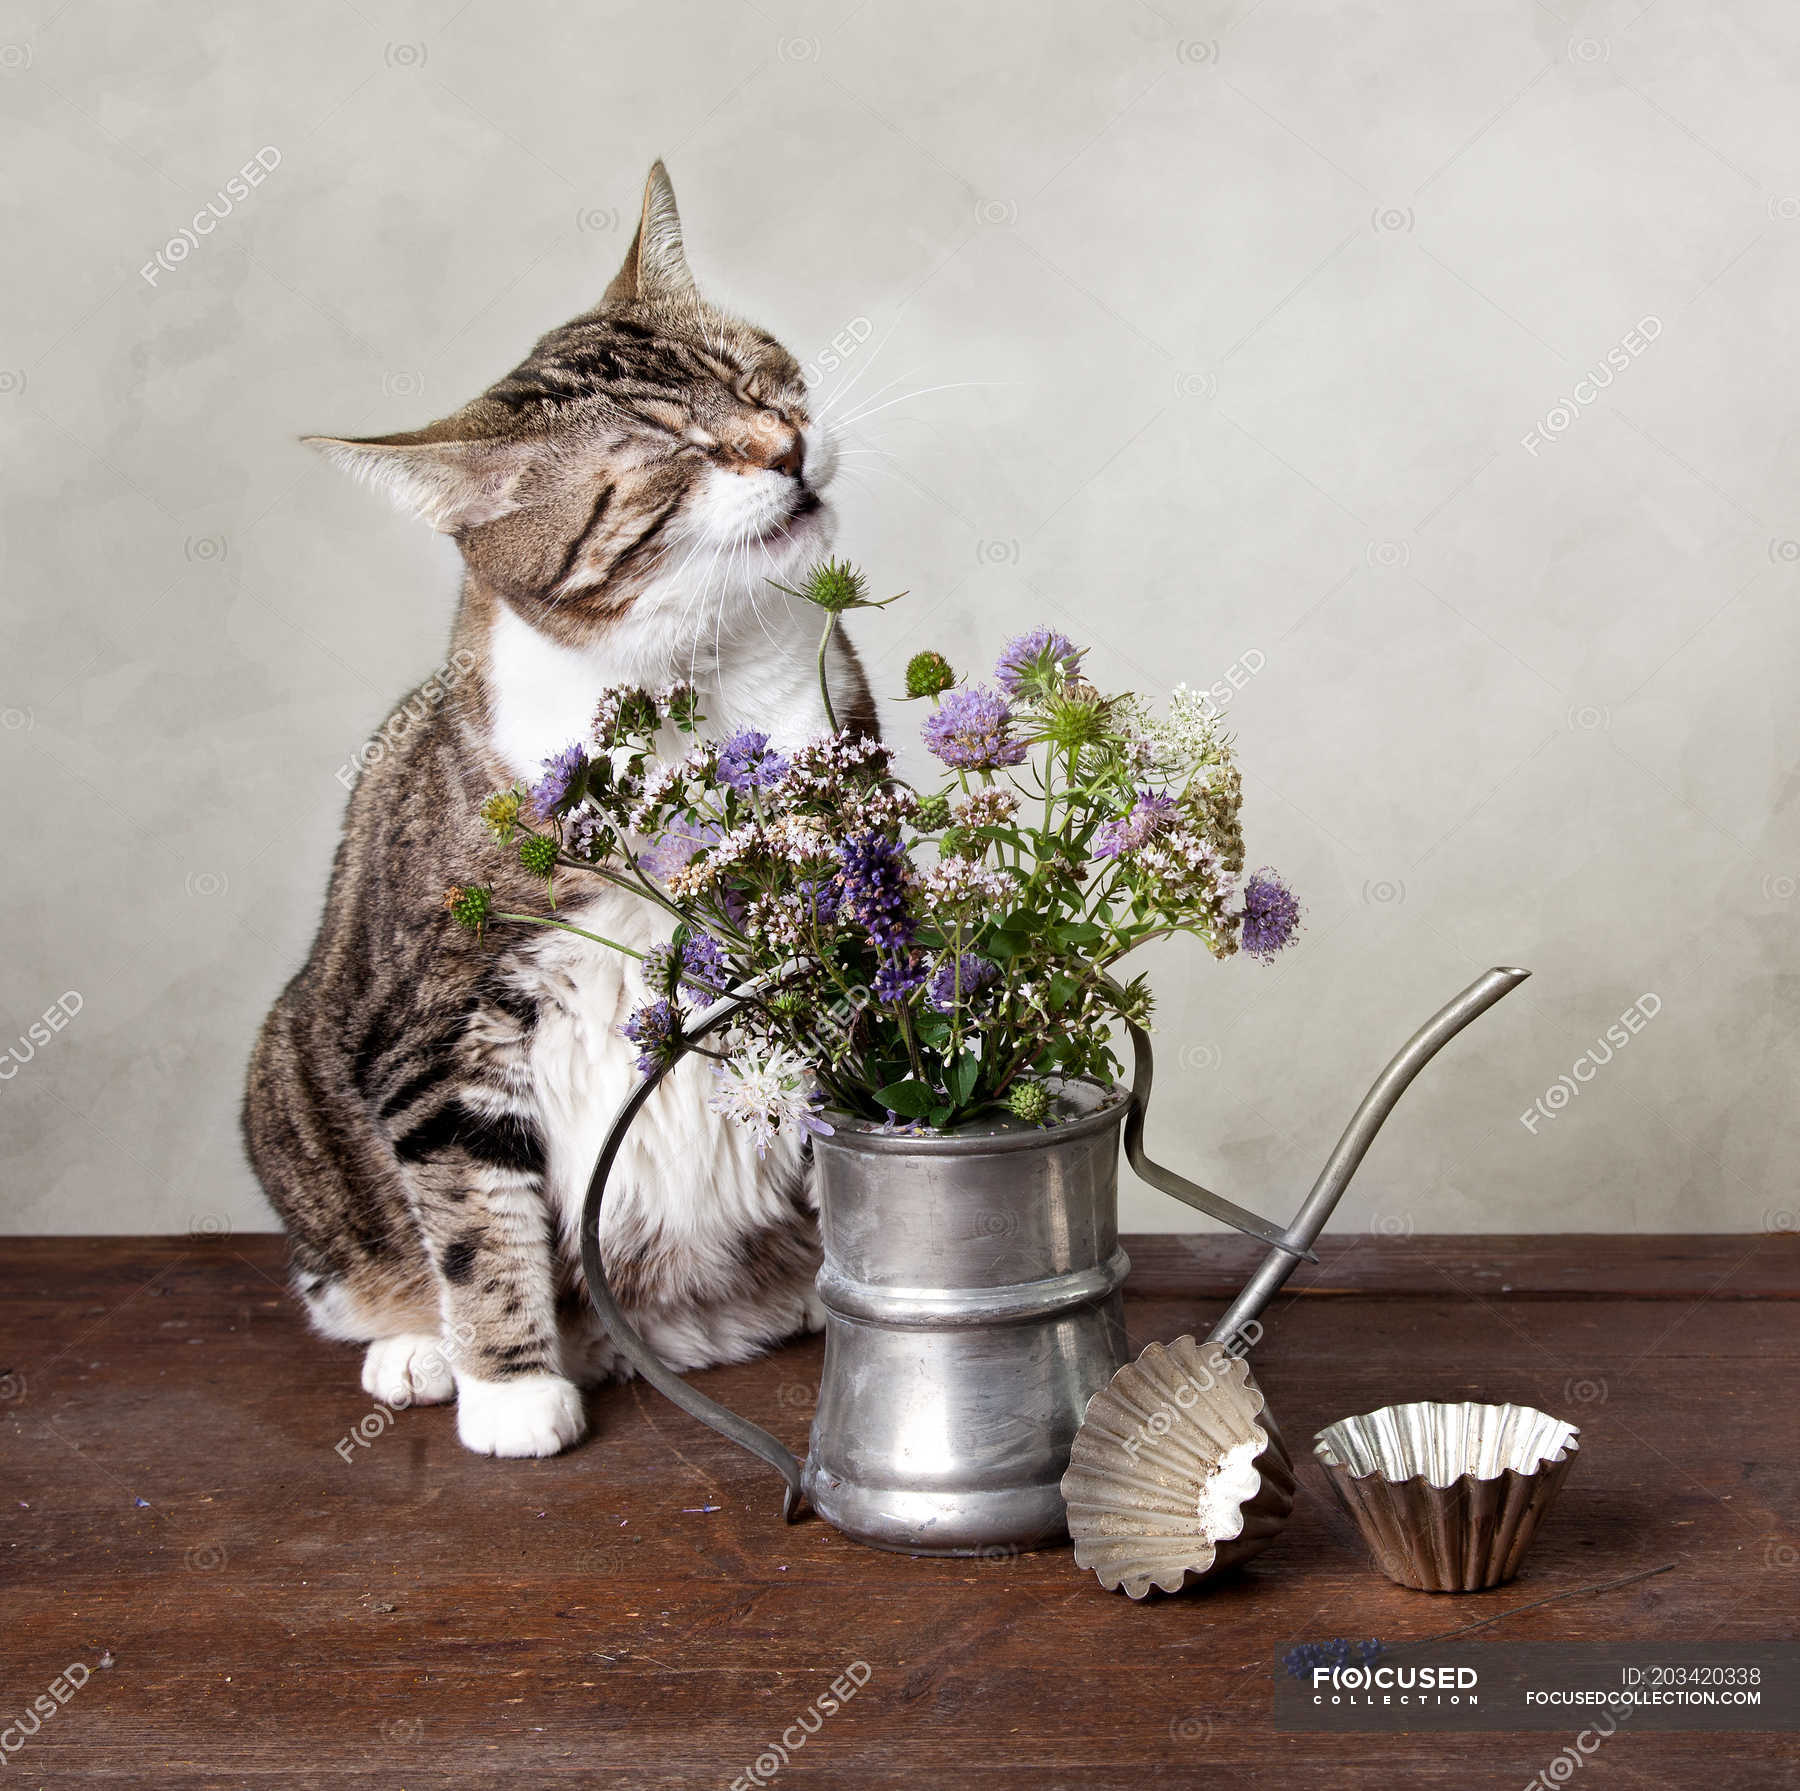 Domestic Cat Smelling Bouquet Of Flowers In Iron Teapot Table With